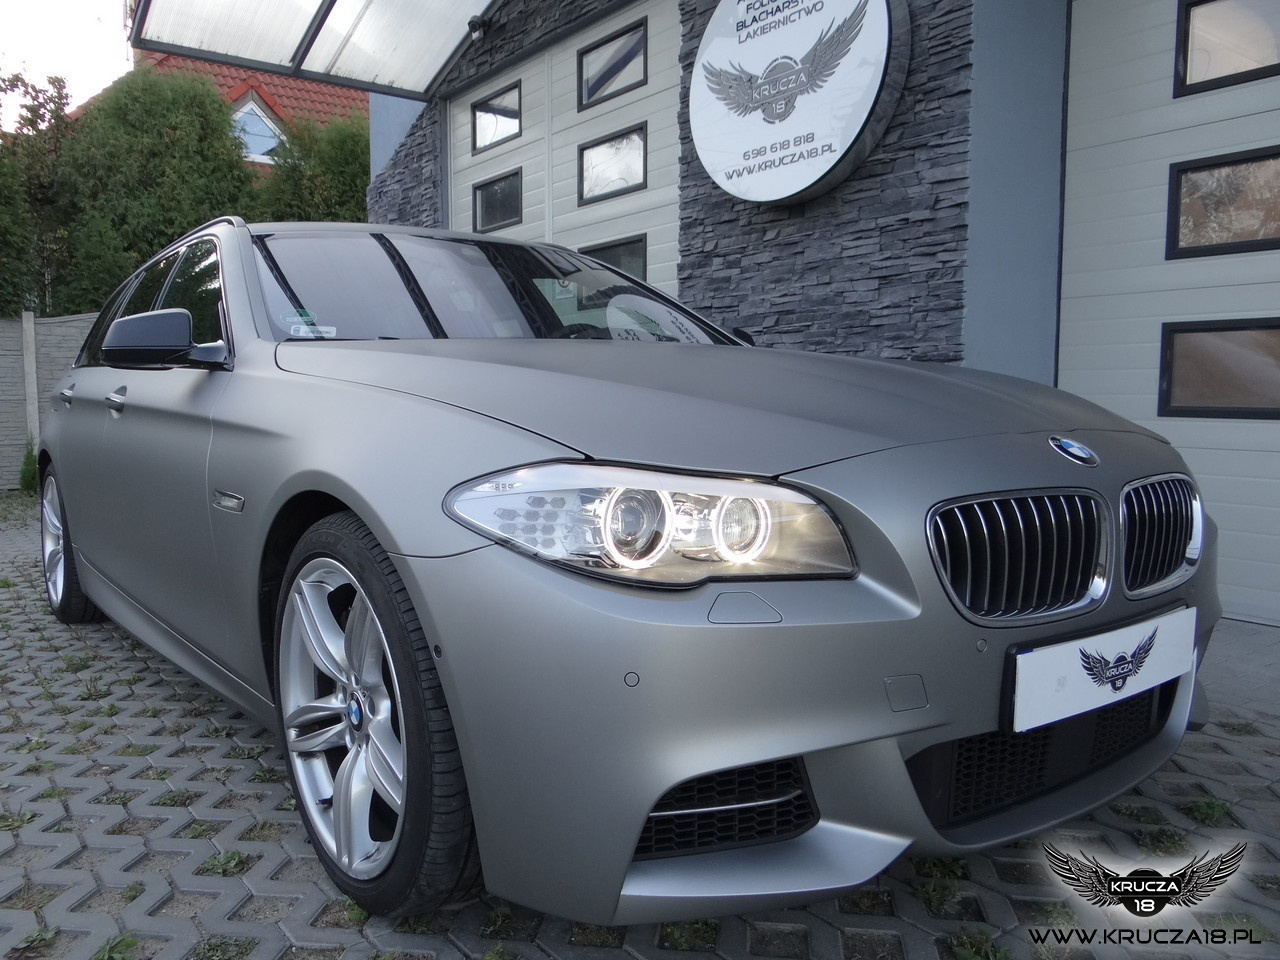 BMW - Matte Steel. Arlon